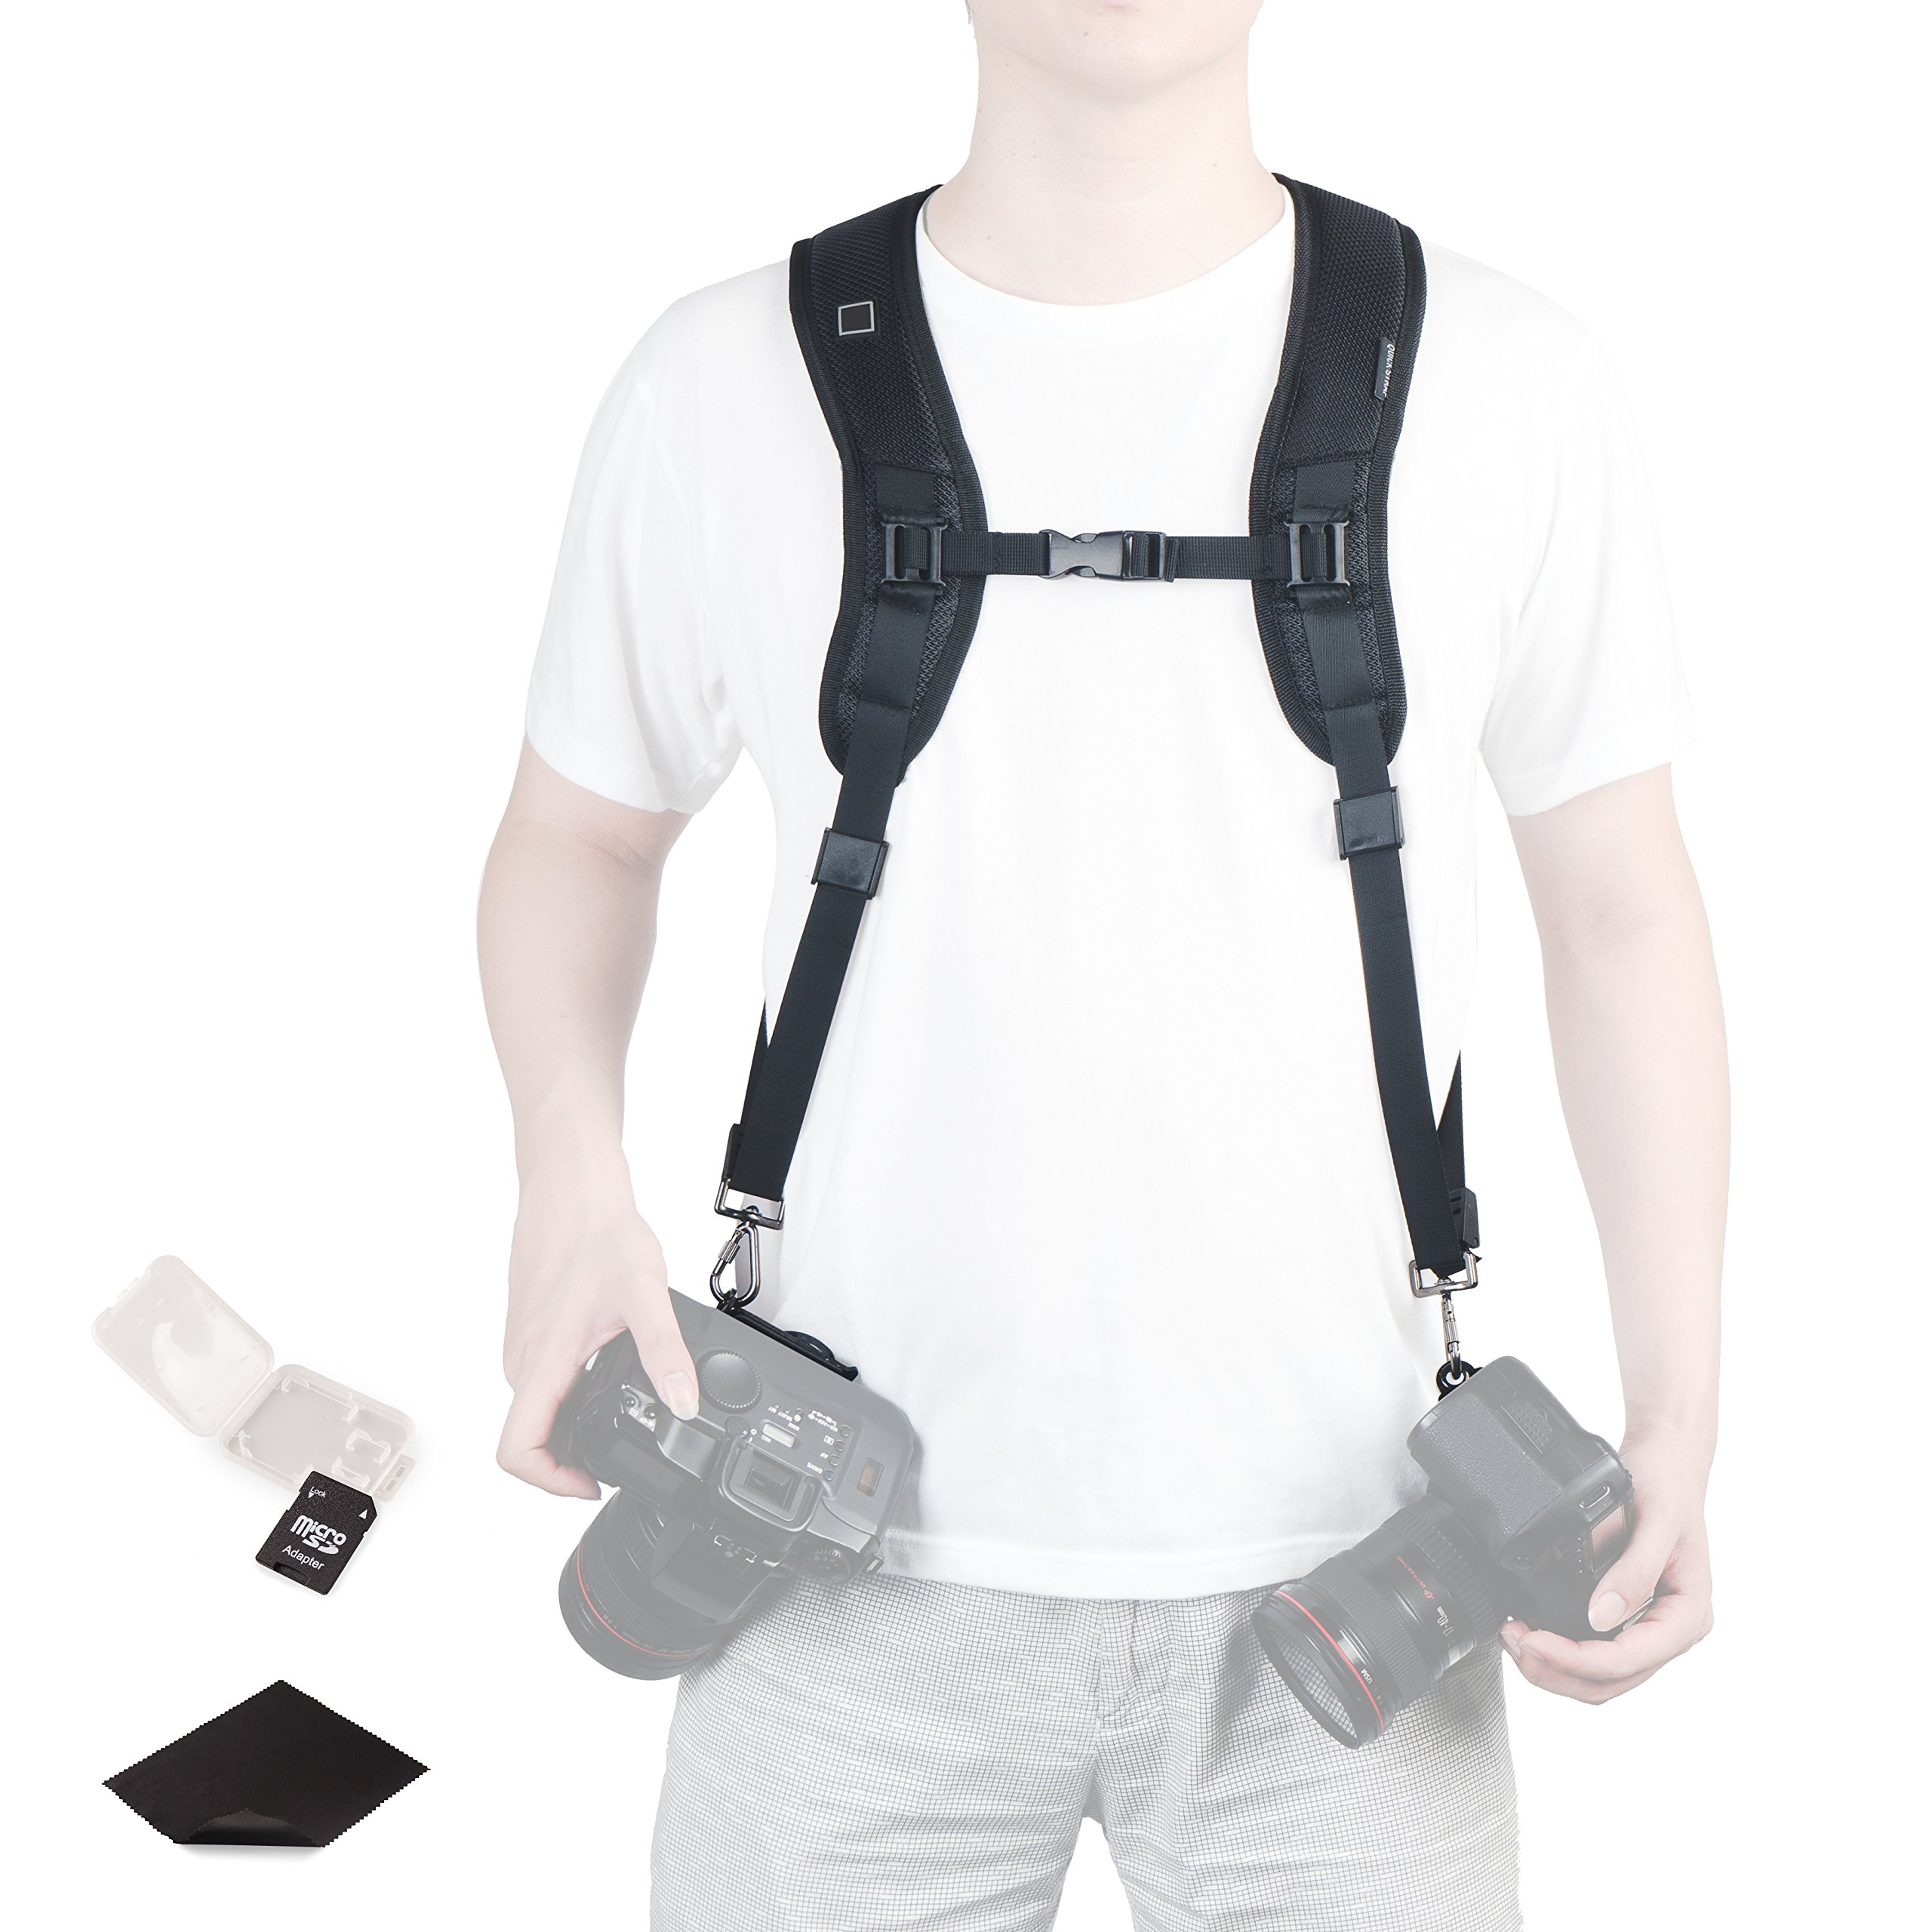 Double Shoulder Quick Release Camera Strap Rapid Fire Dual-Shoulder Camera Strap by CamZone